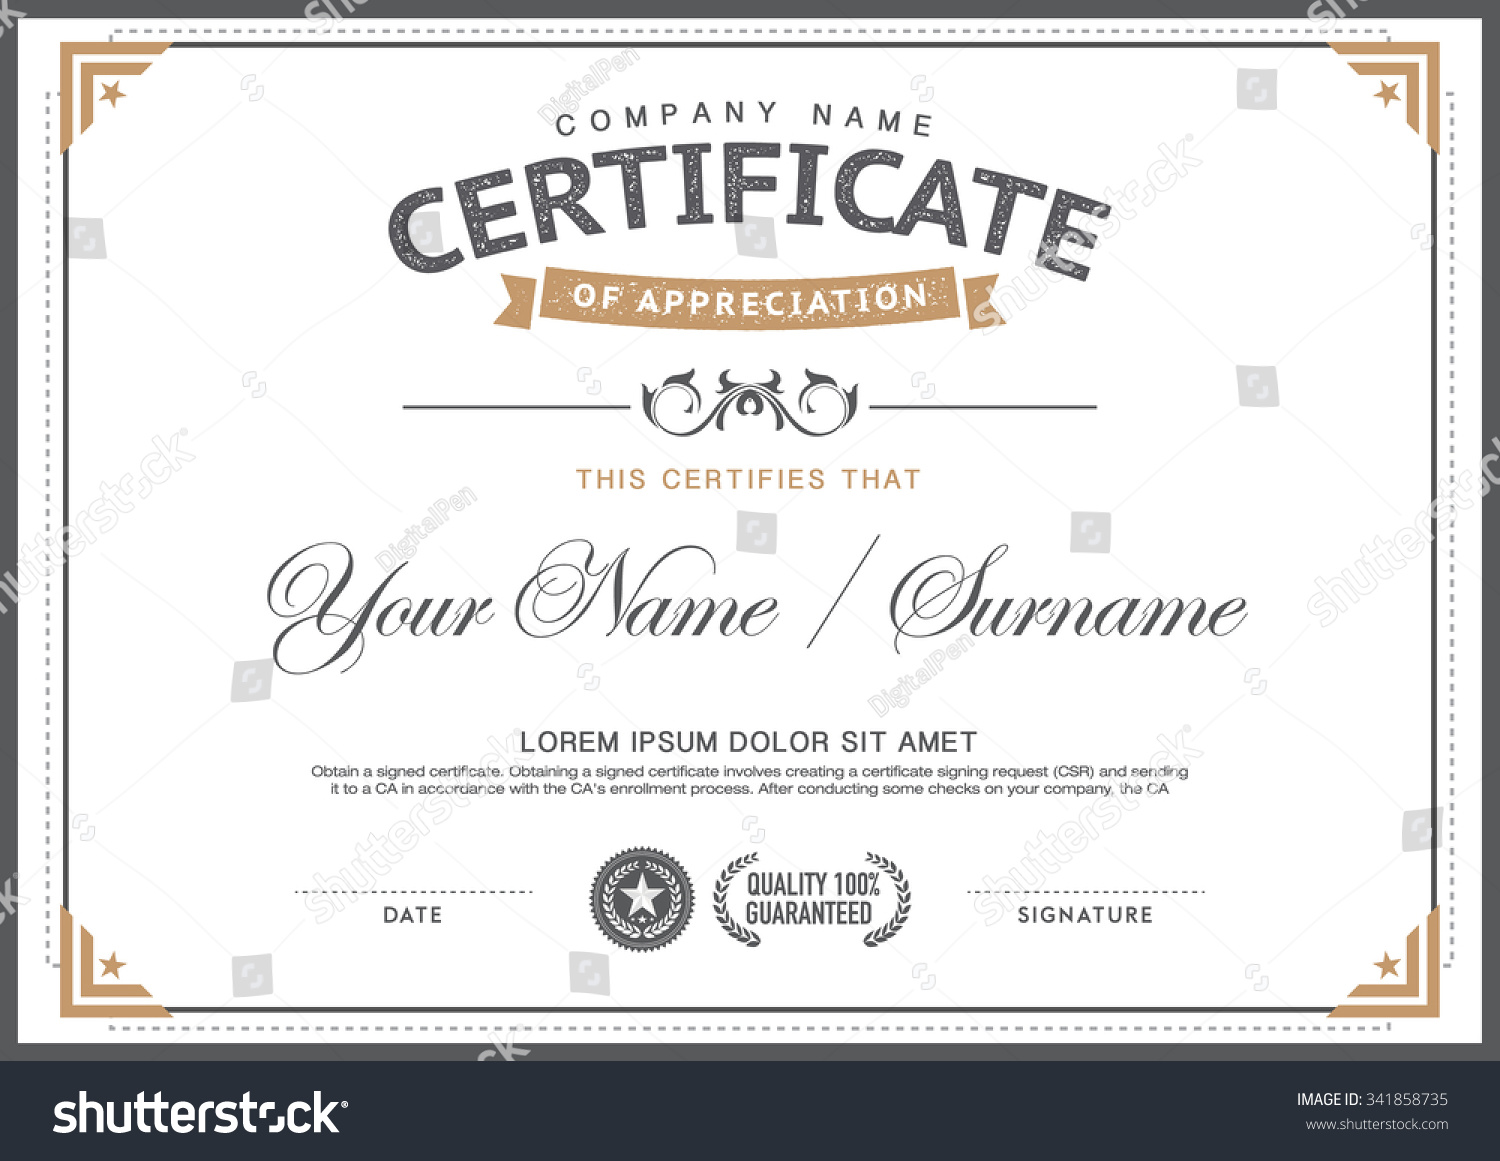 Vintage Certificate Template Smartcleanhipster Stock Vector Royalty